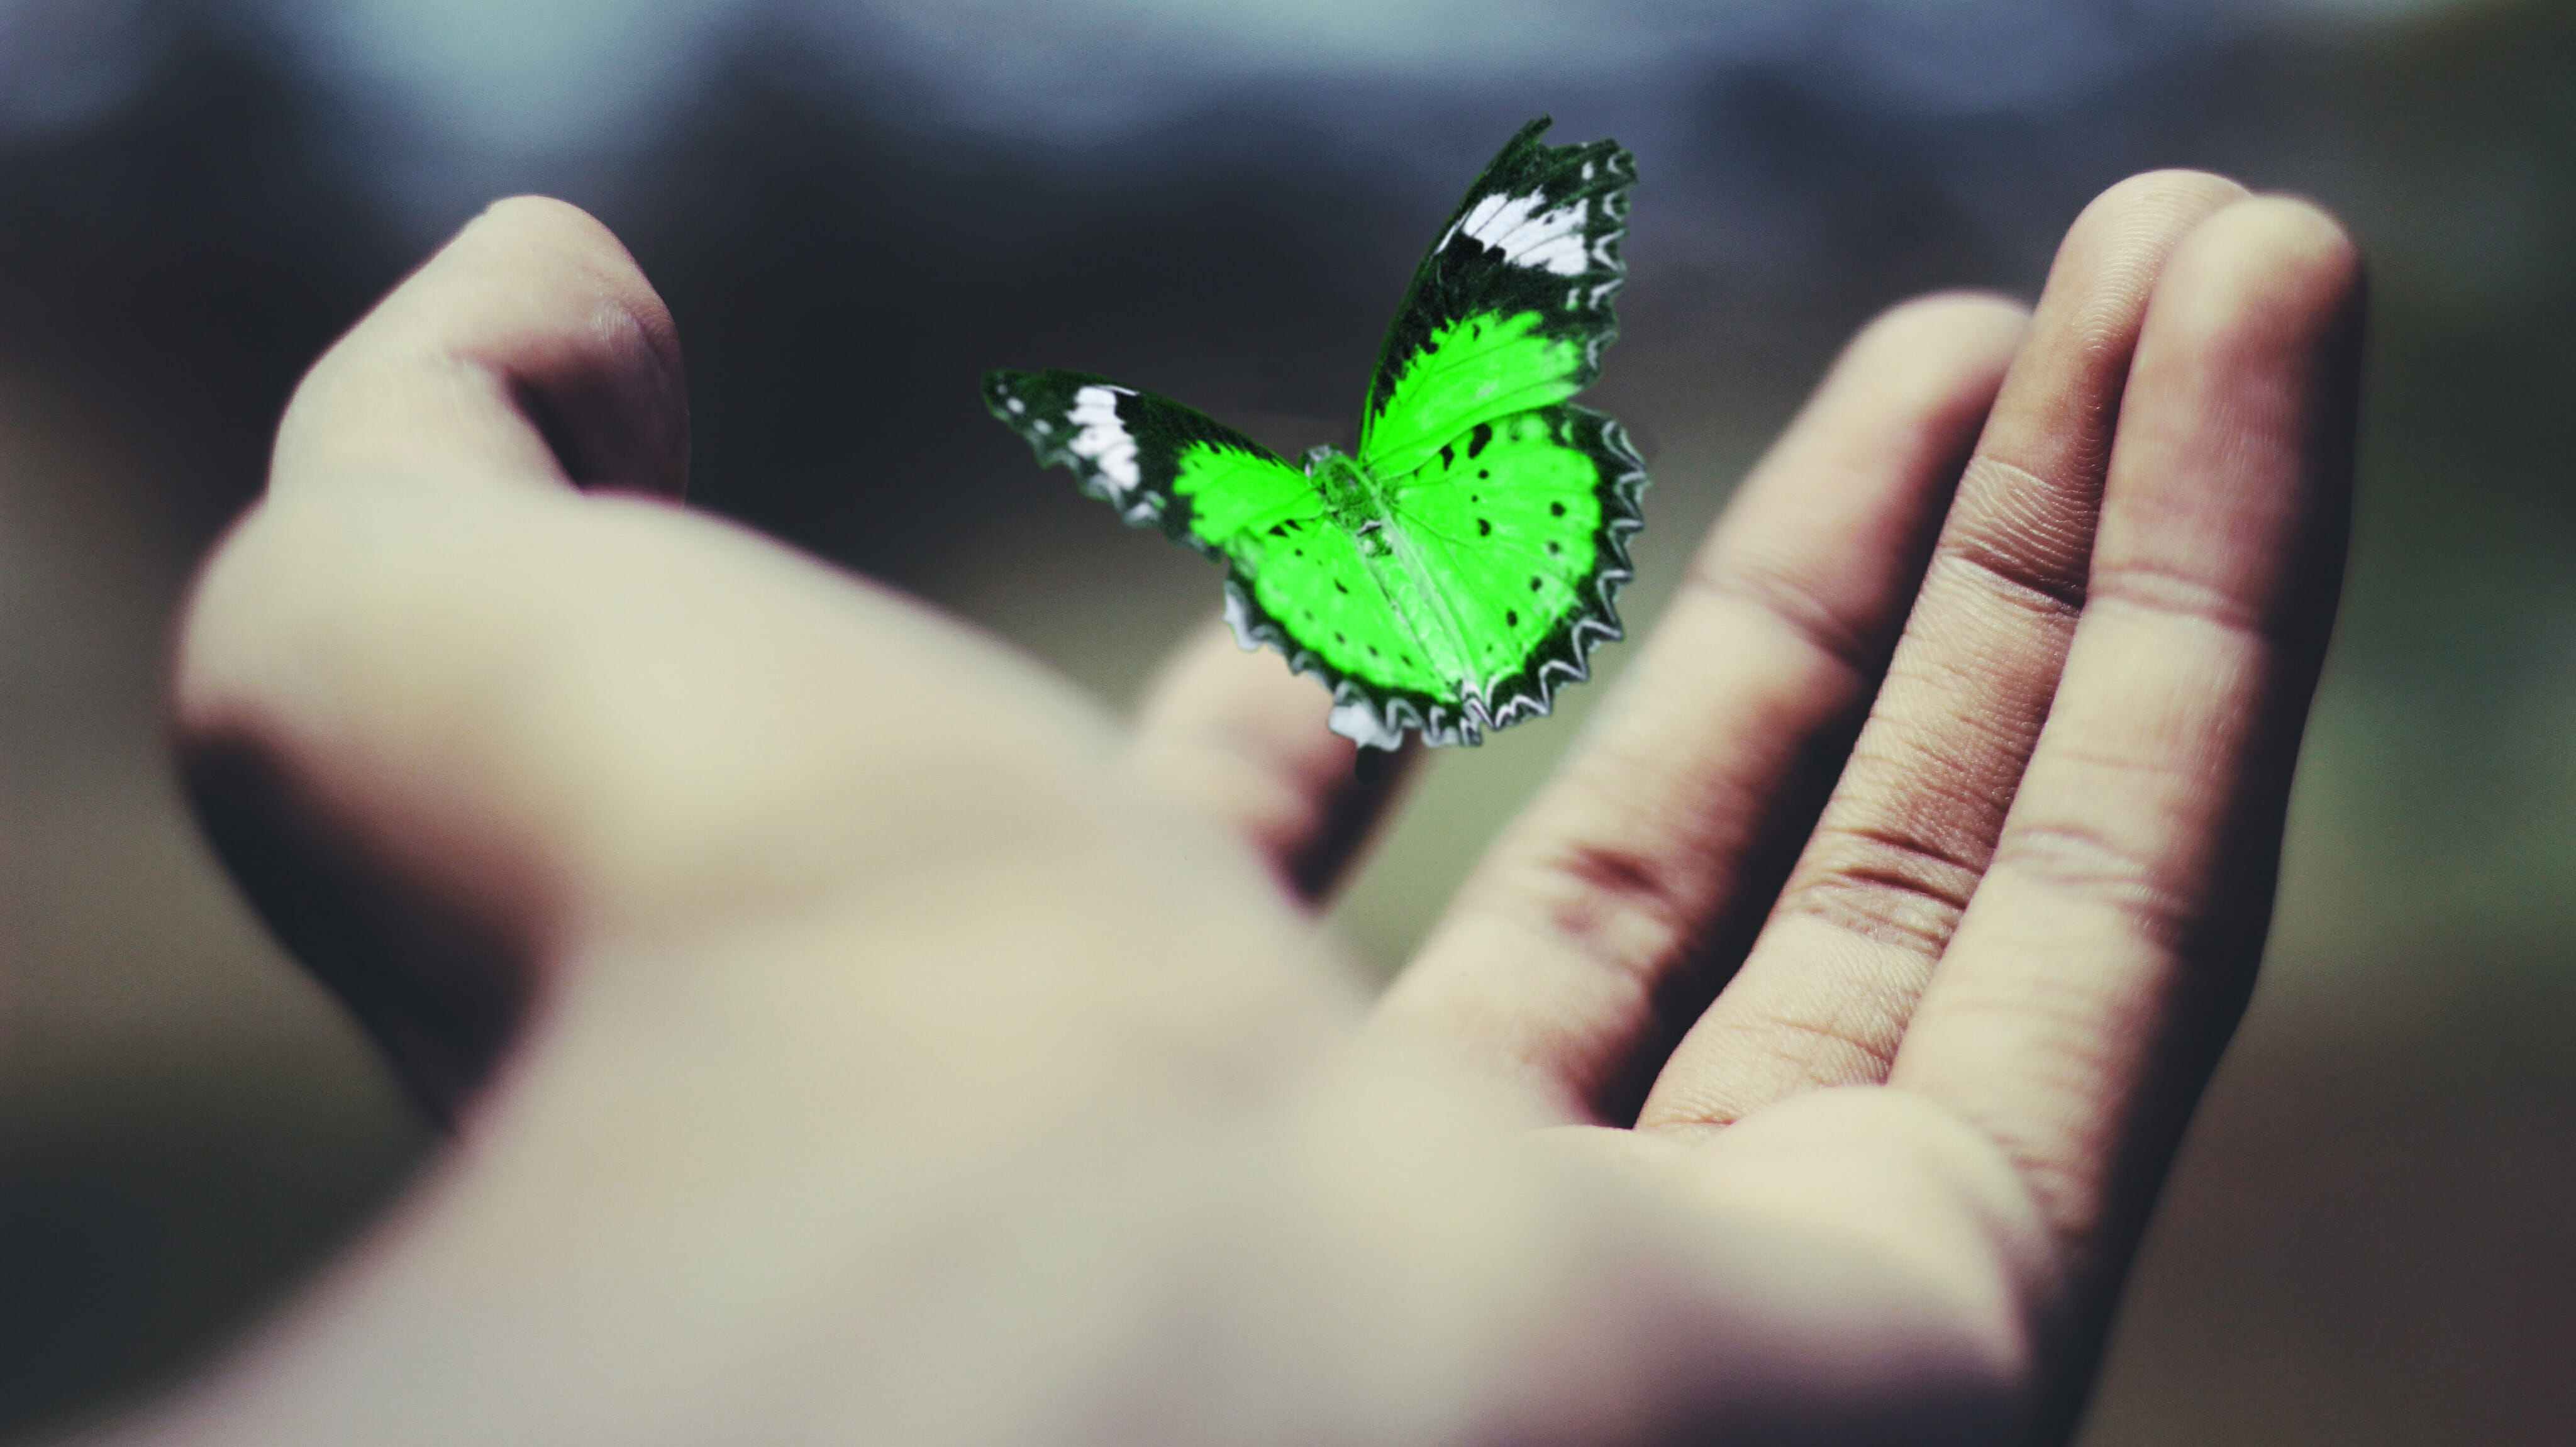 Hand image with butterfly